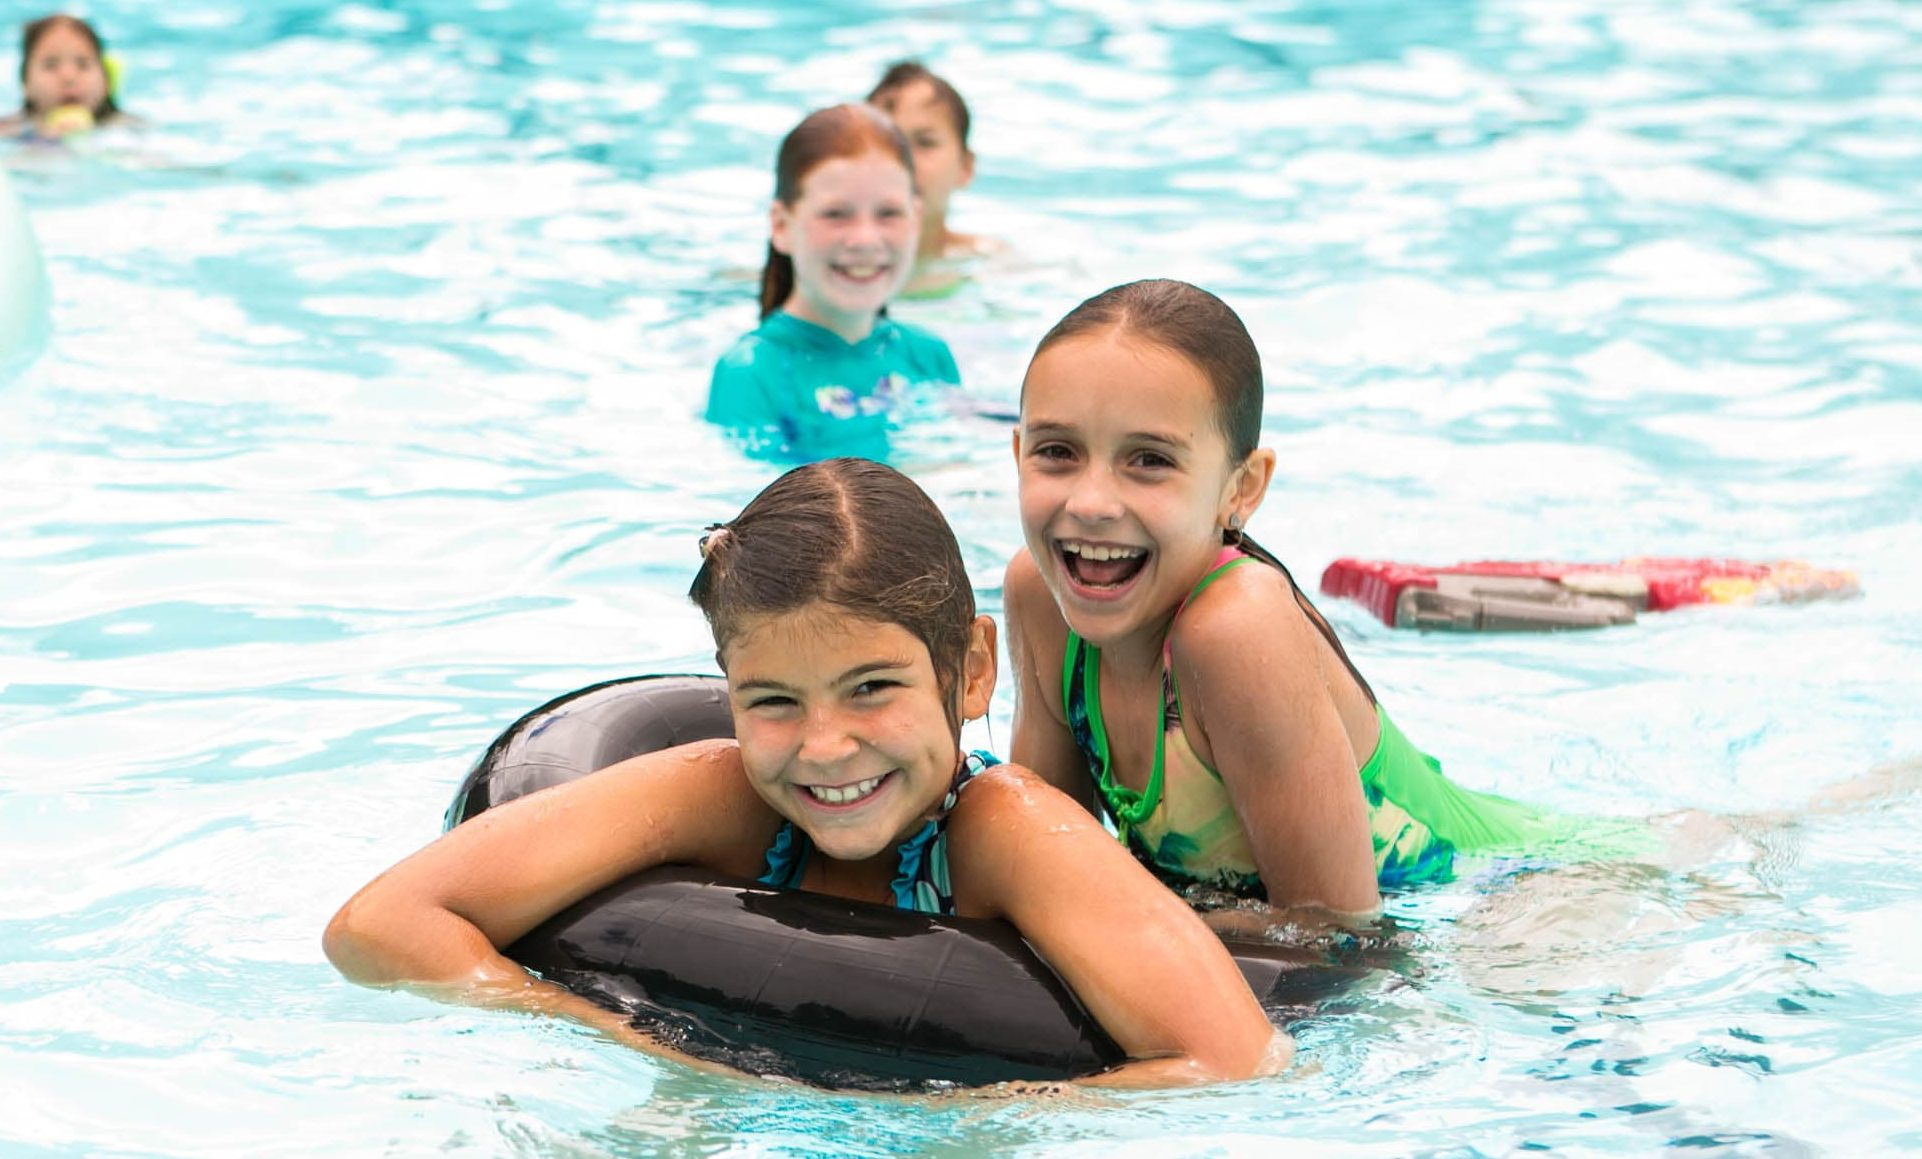 Kennolyn day campers laugh while swimming